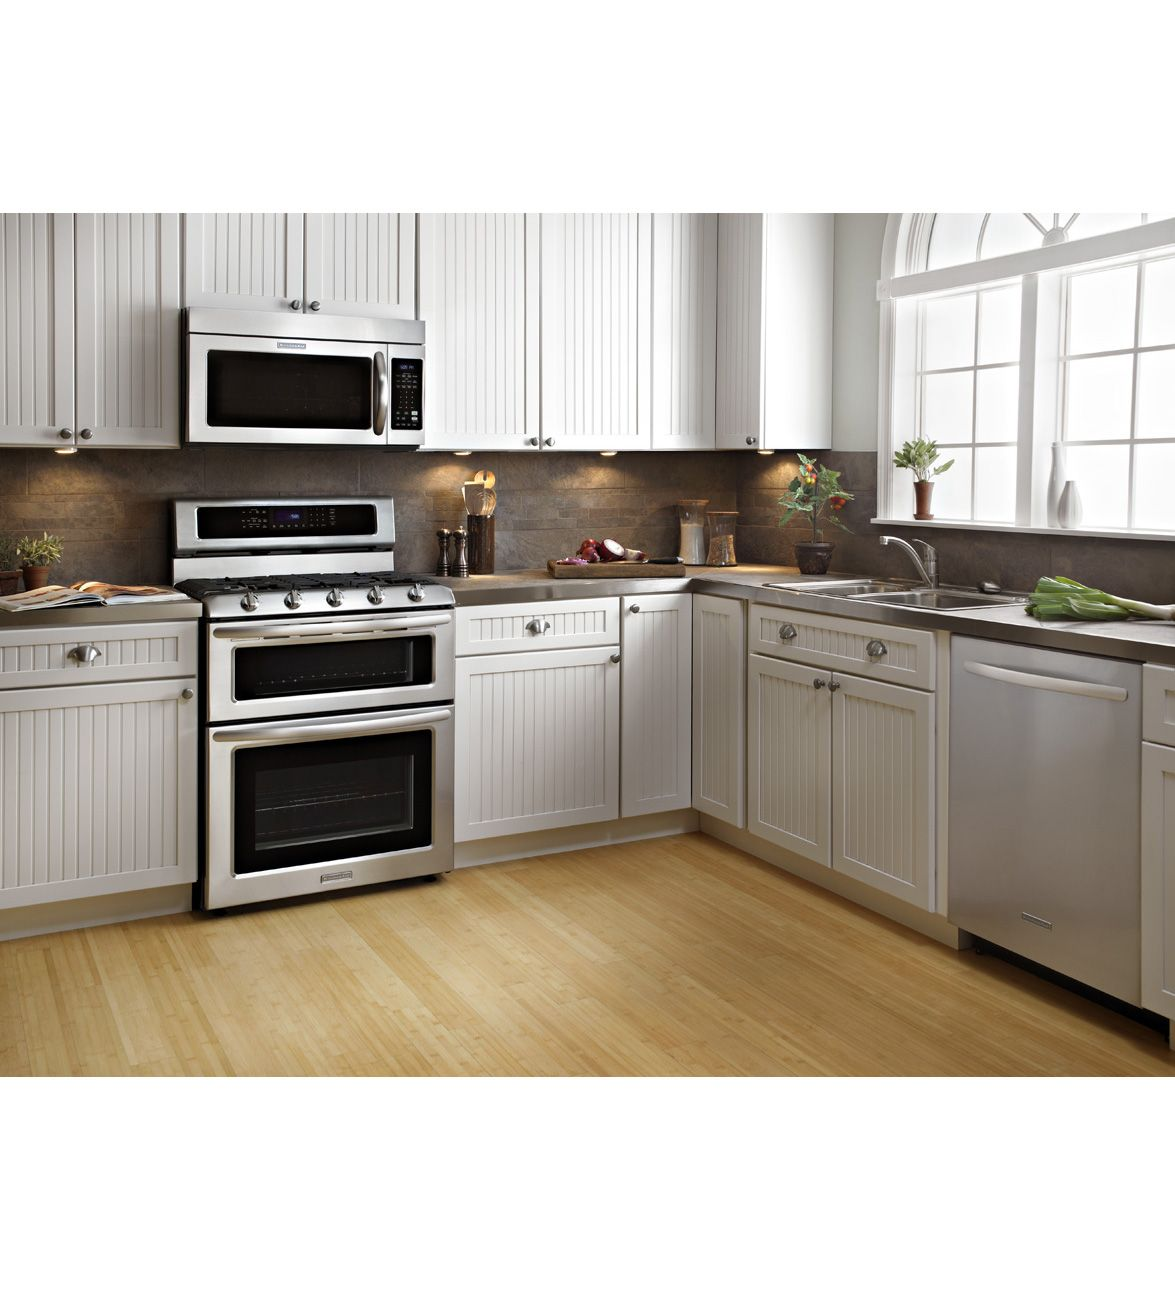 The KitchenAid Dual Fuel Range Was Recently Tested By ConsumerReports. This Freestanding  Range Can Be Seen In Their April Special Issue, Kitchen And Buying ...